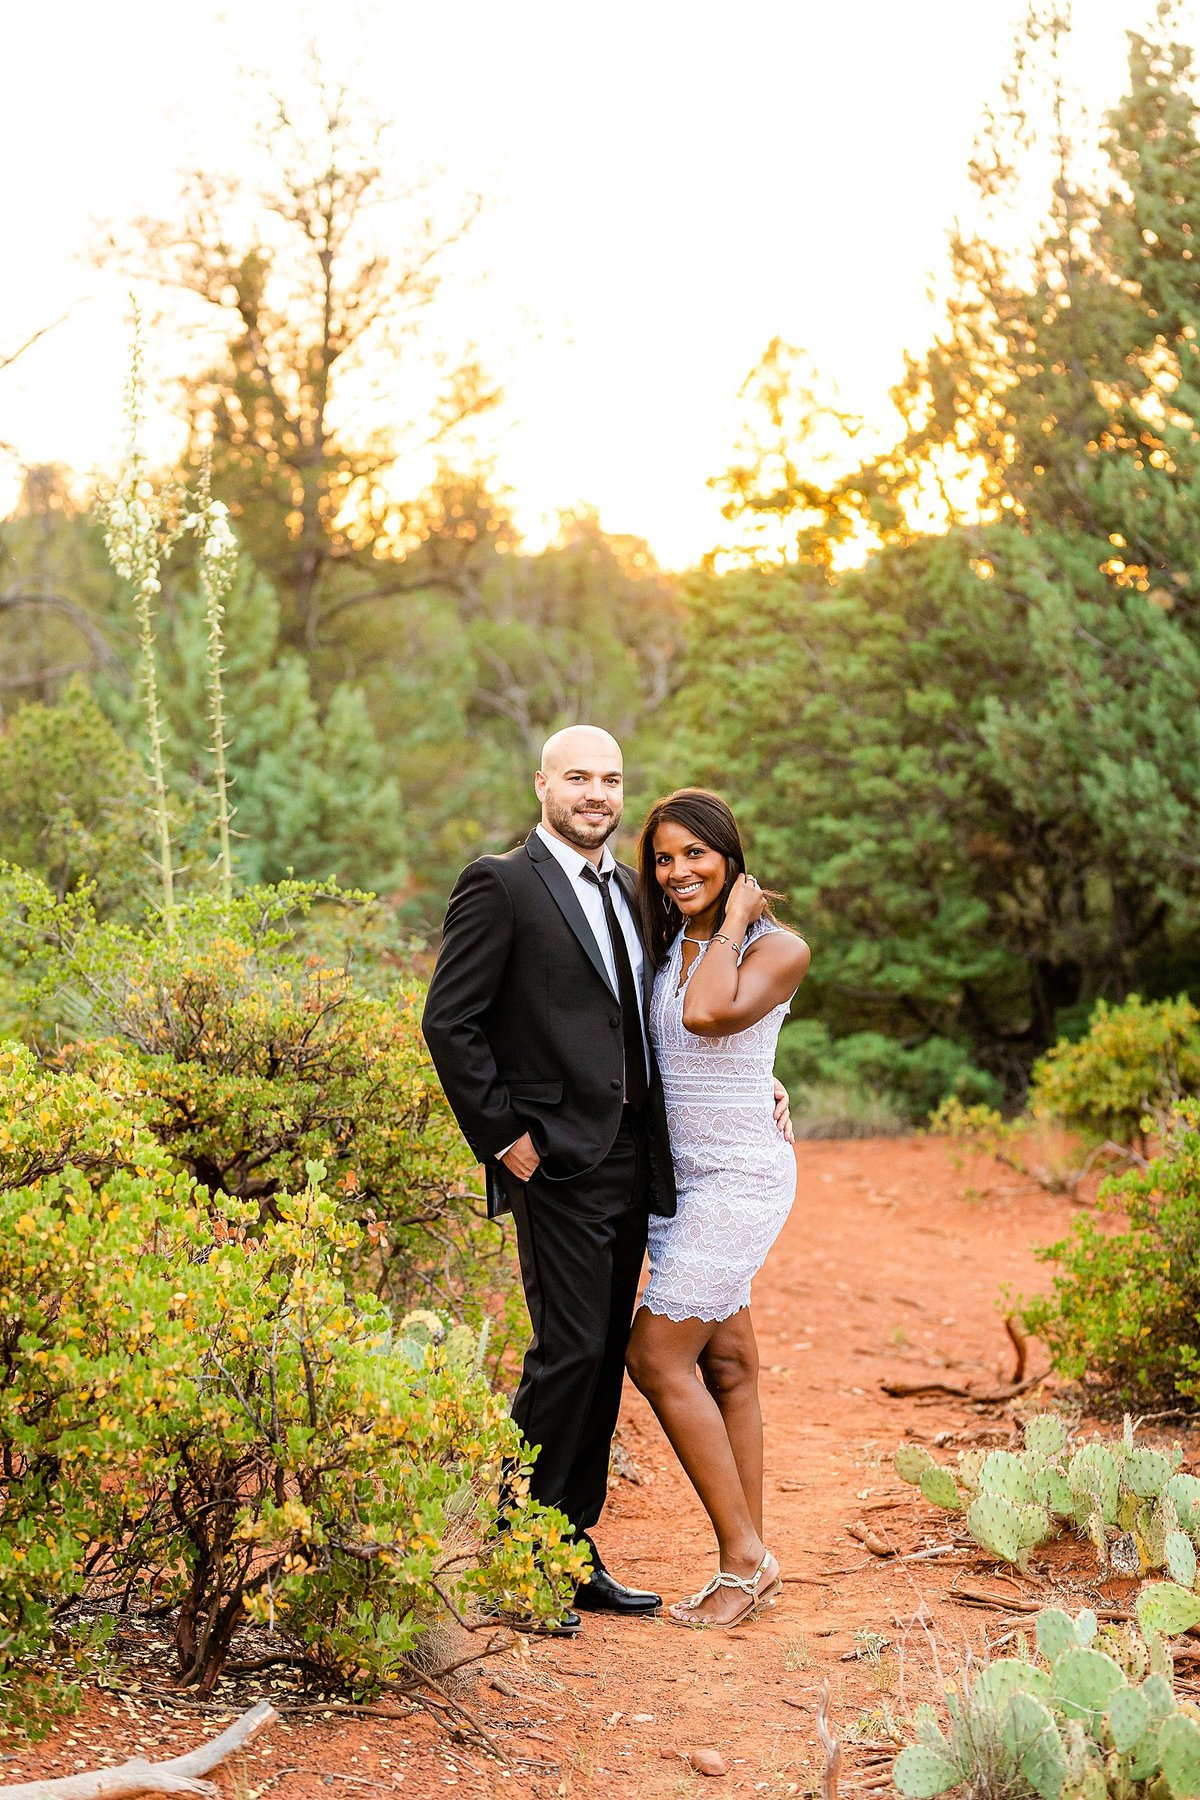 Monica + Austin - Sedona Engagement Session - Cathedral Rock - Lunabear Studios_0201